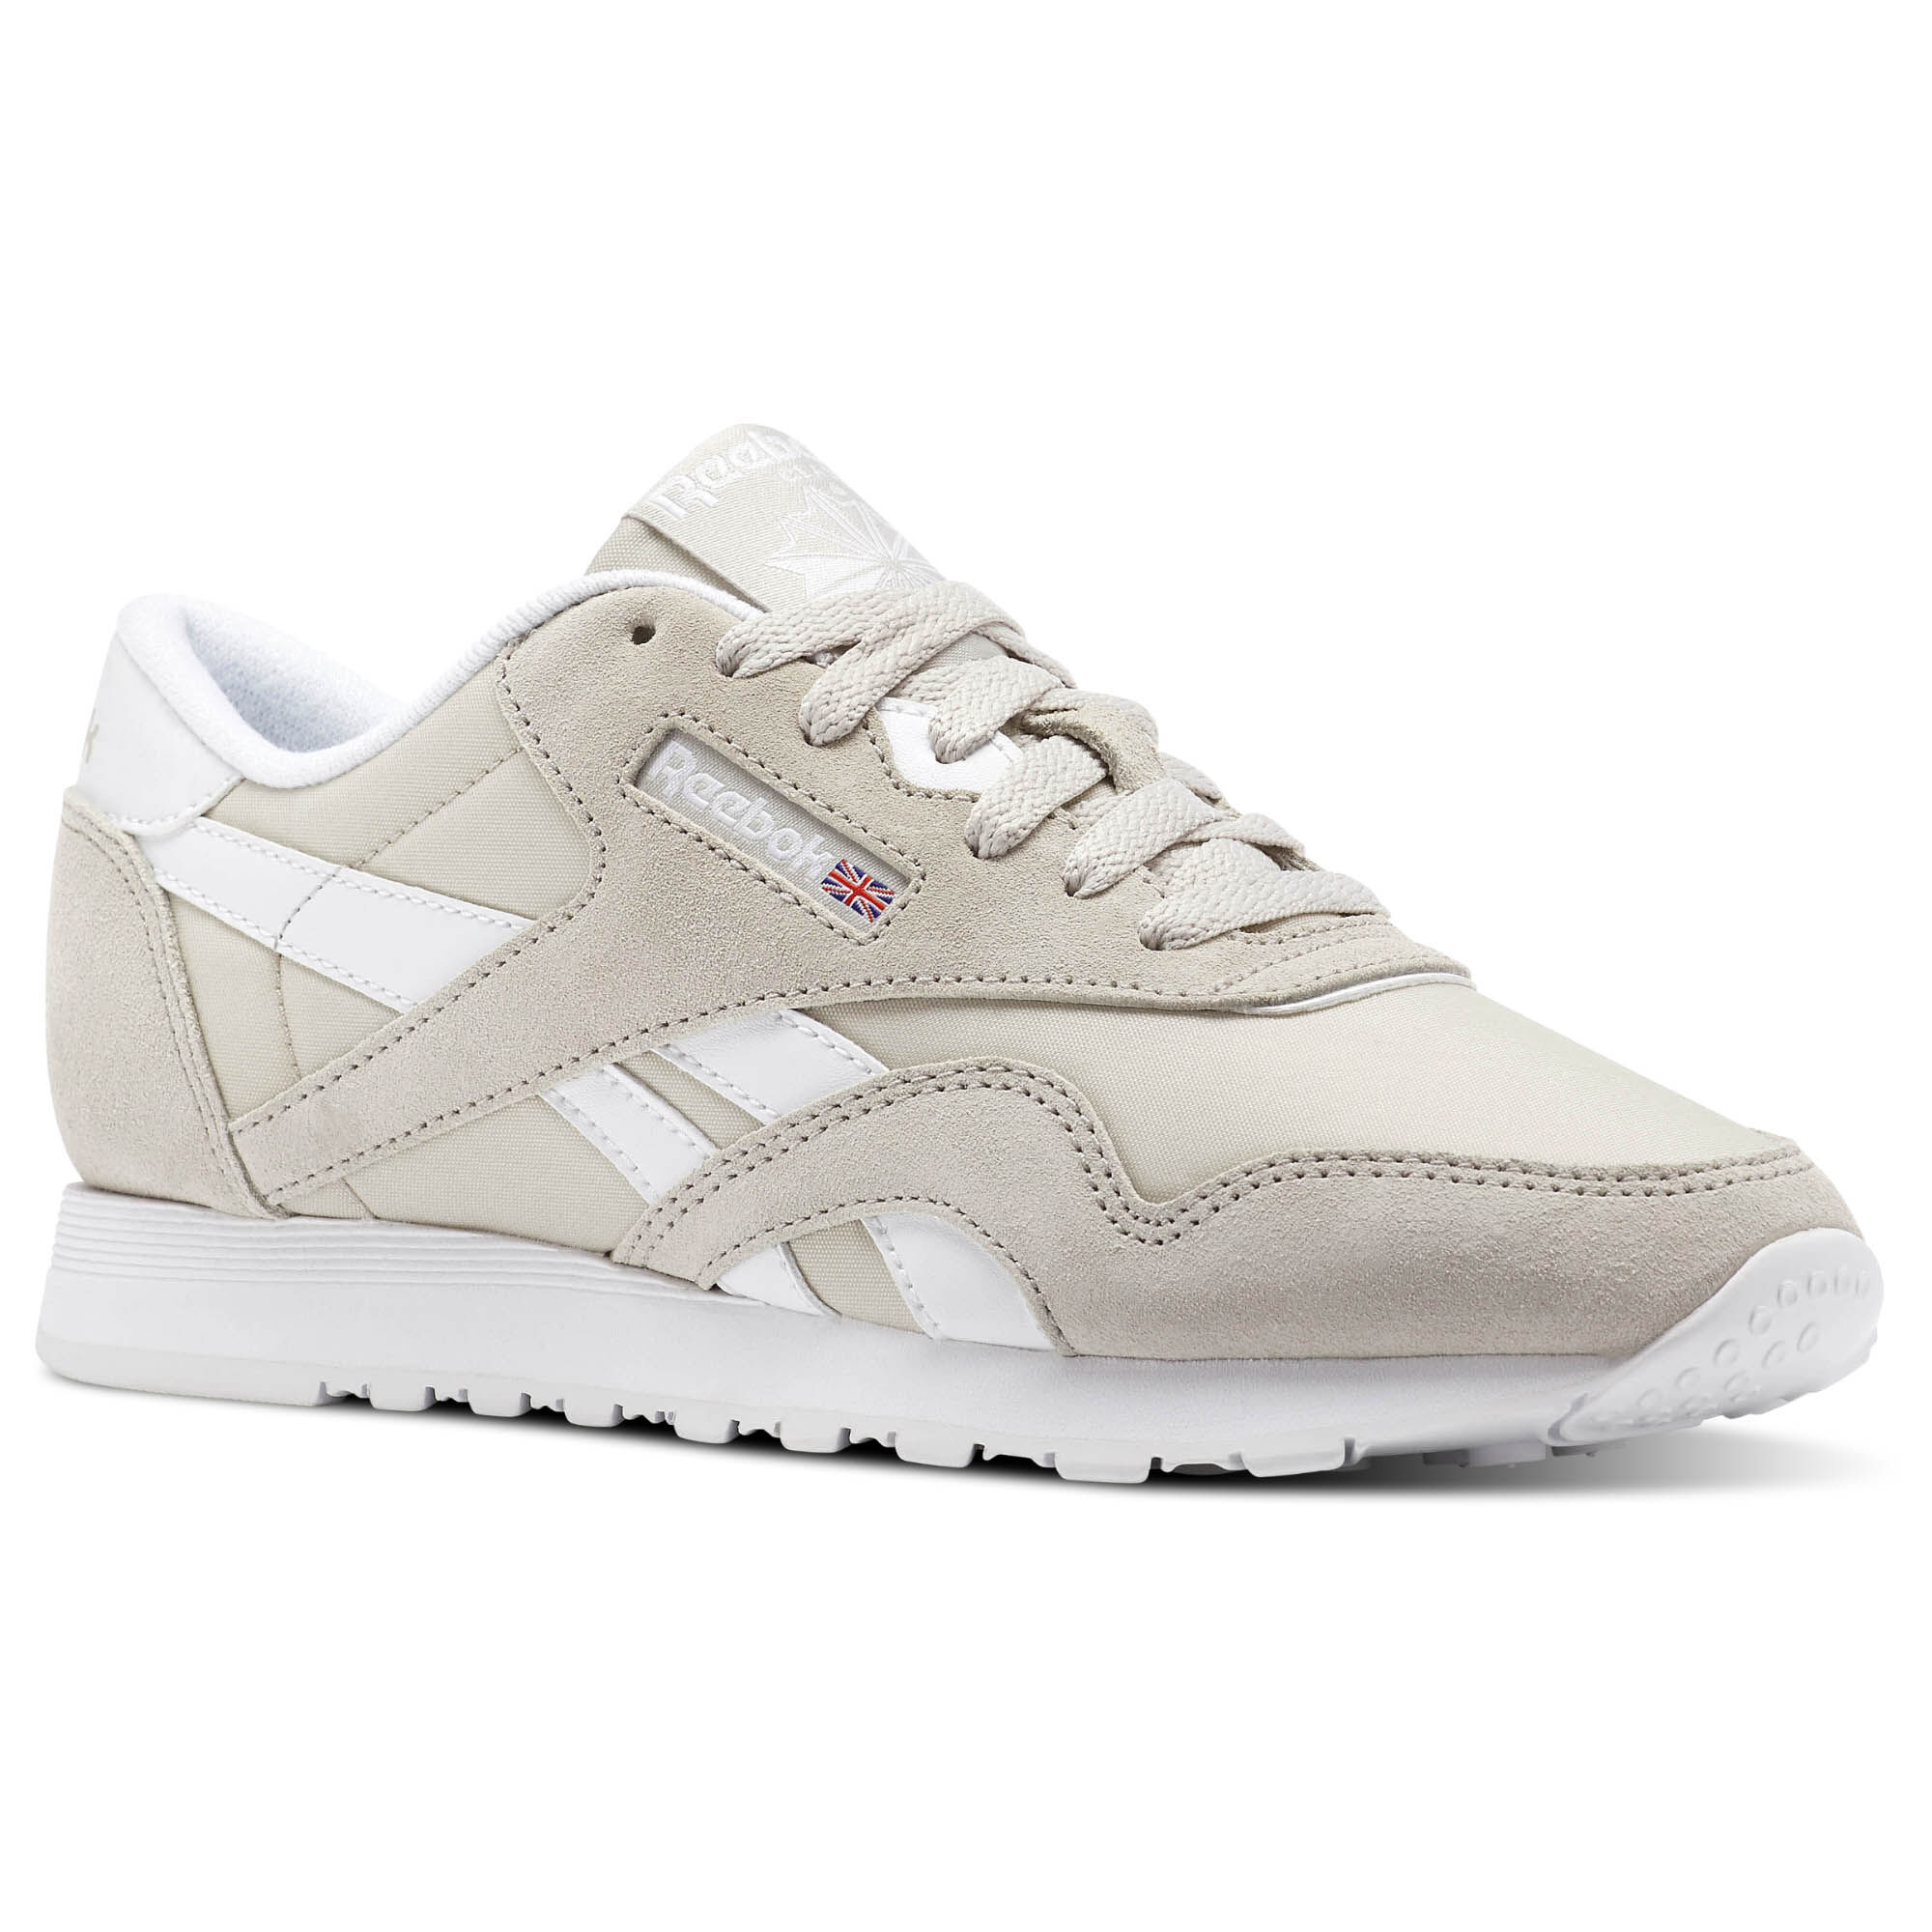 Reebok Sneaker Frauen Classic Nylon Neutral in grau